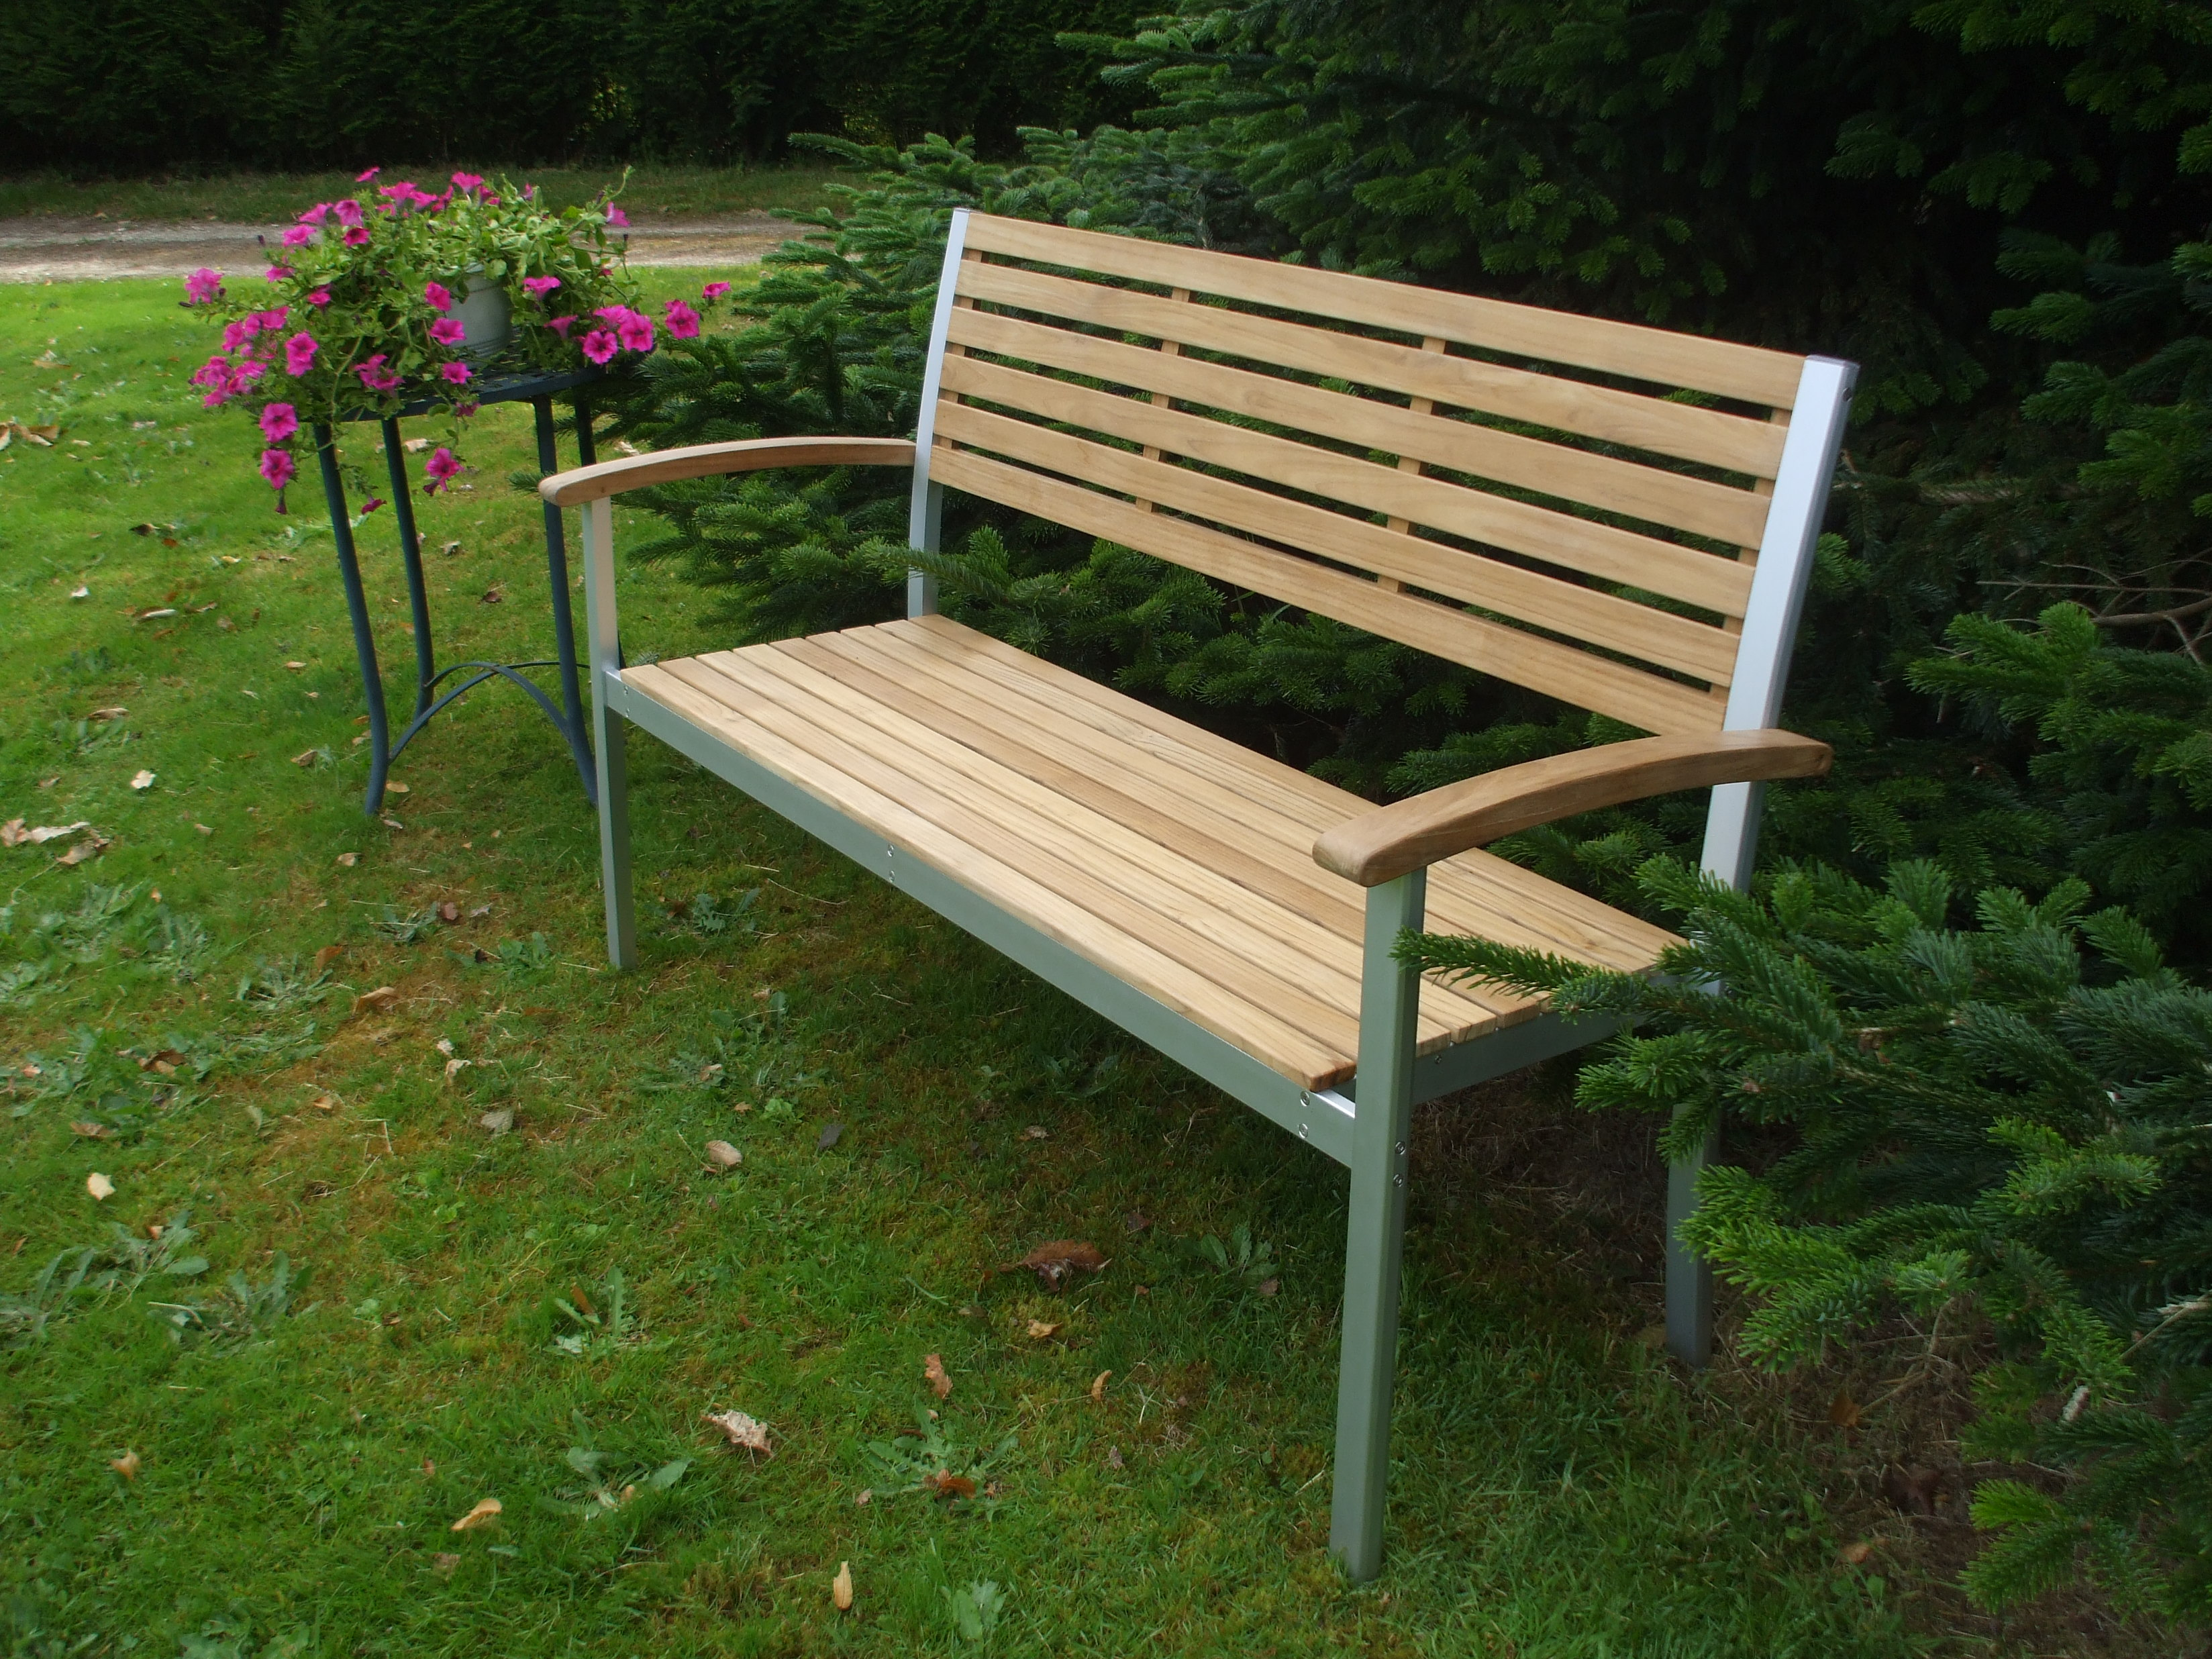 Banc de jardin archives brico deco for Banc de jardin moderne